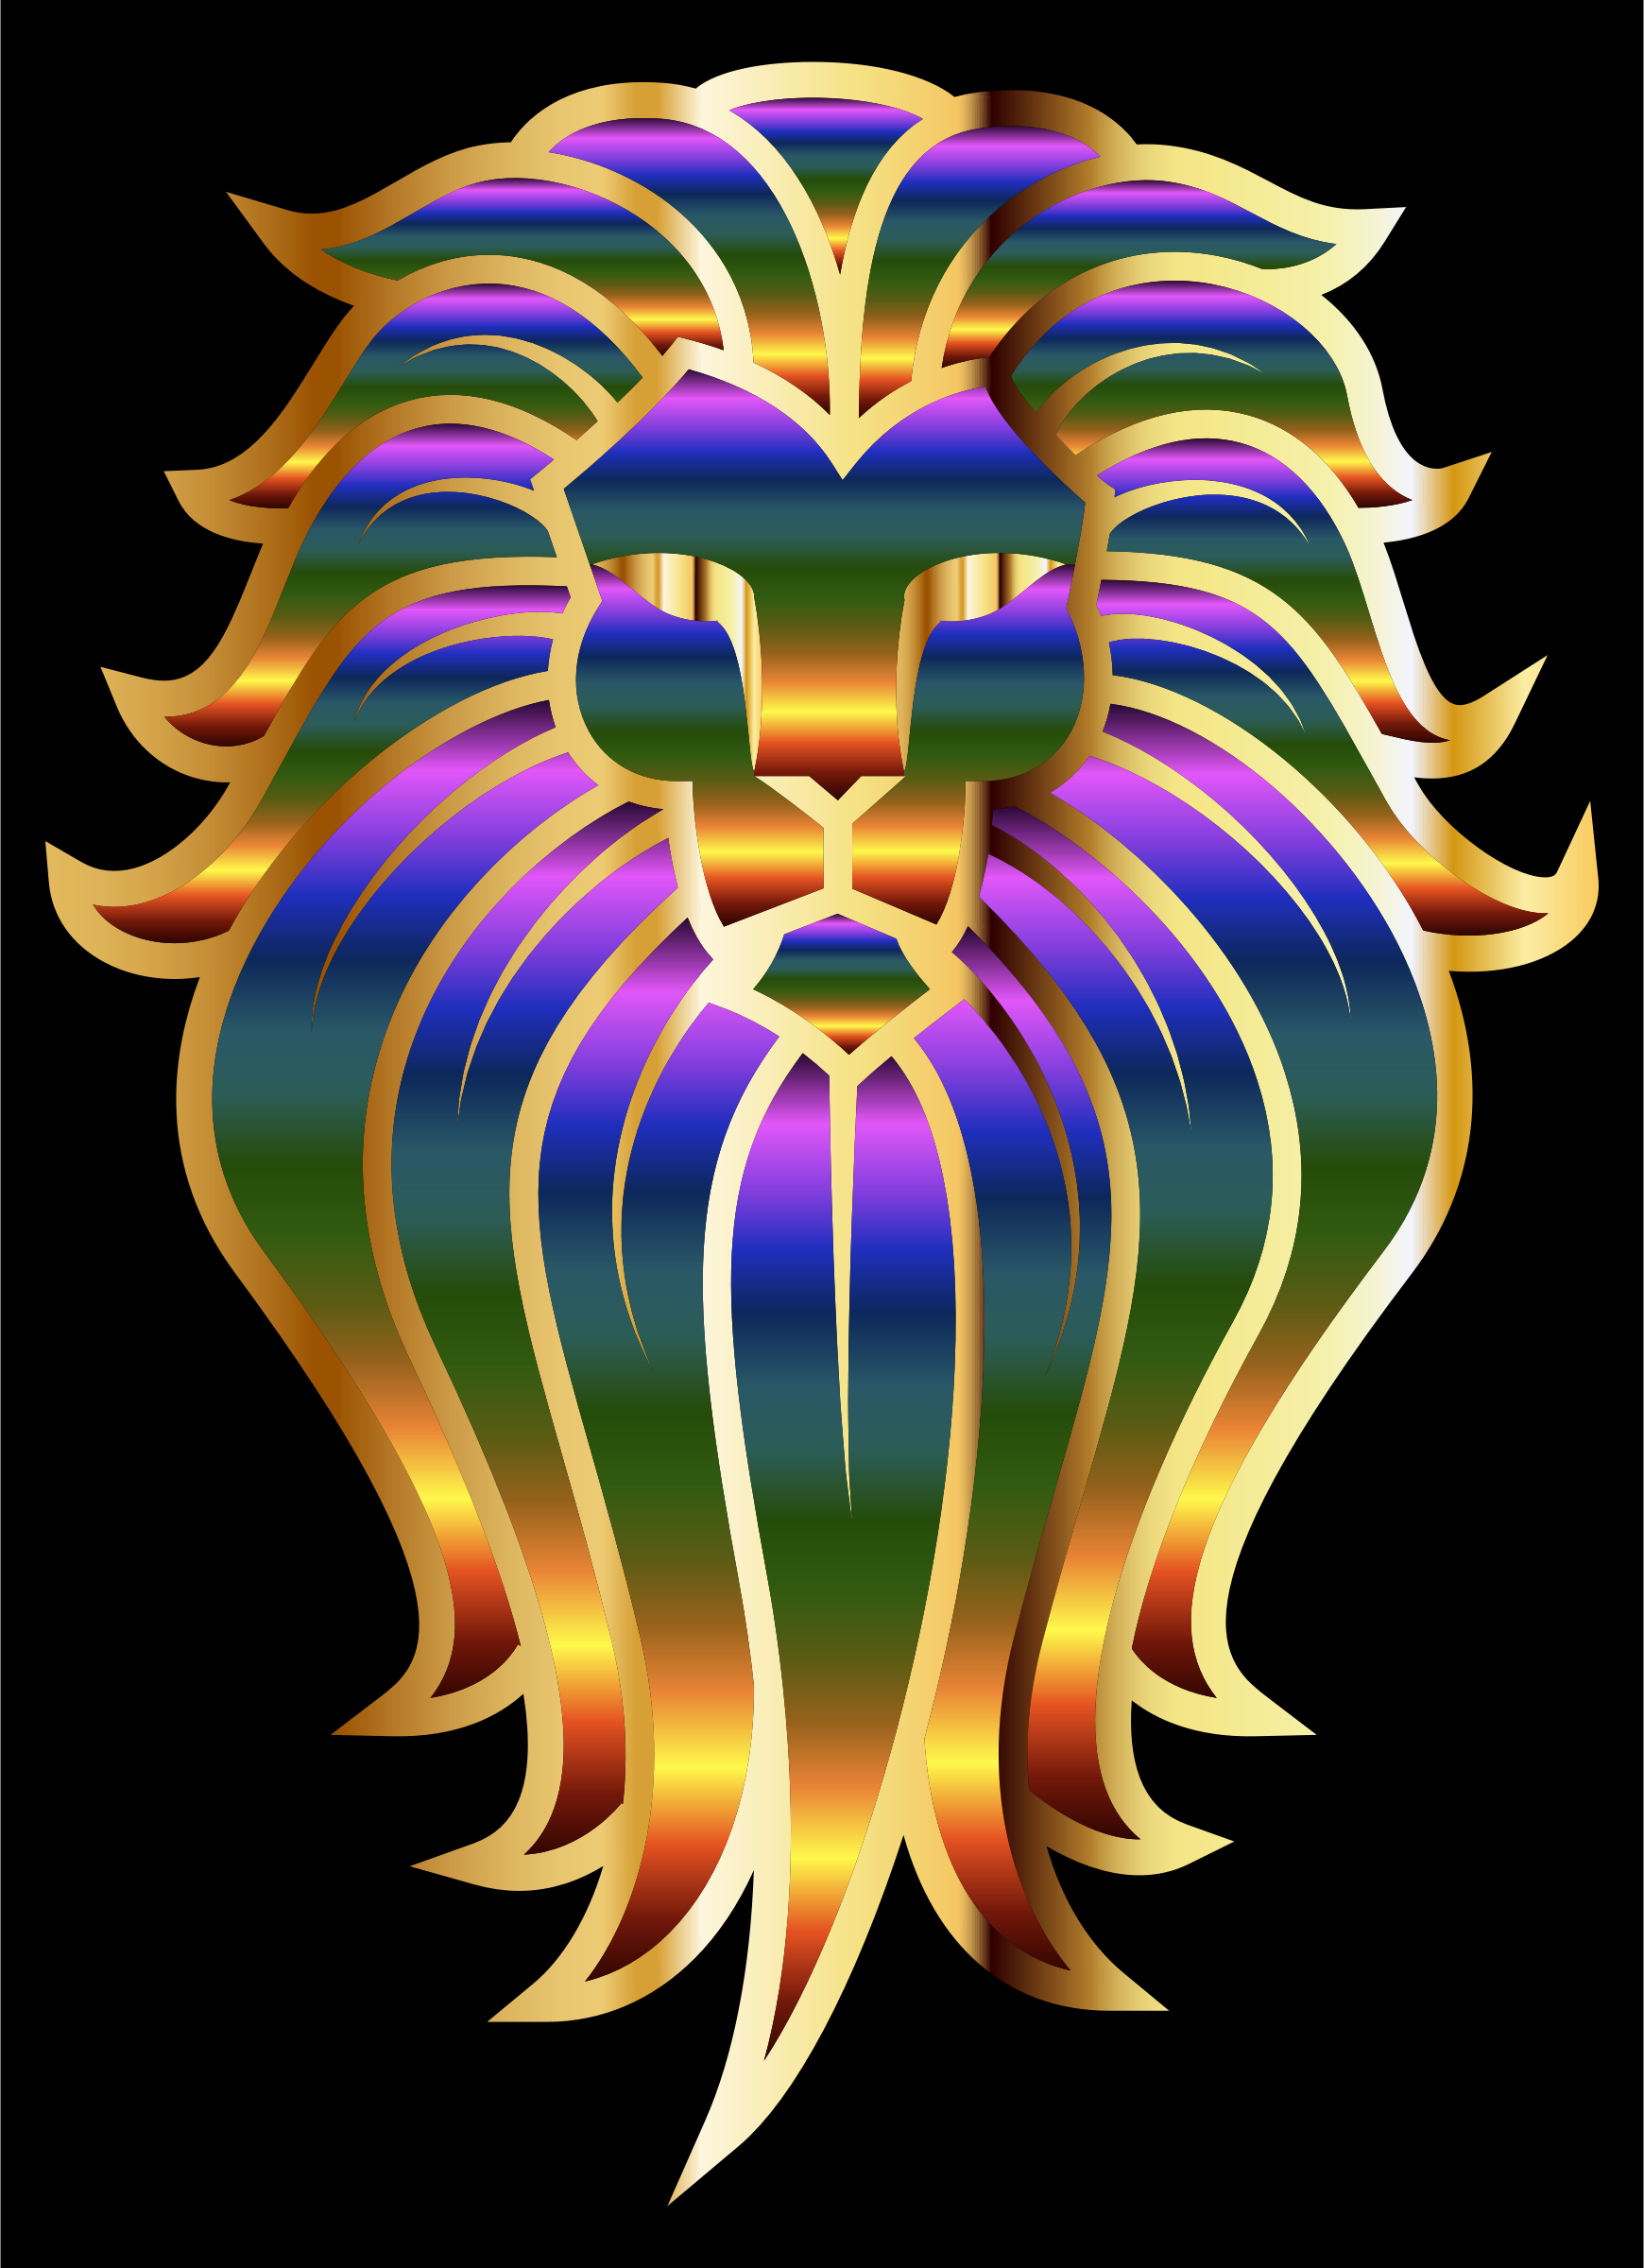 Chromatic Lion Face Tattoo 2 by GDJ